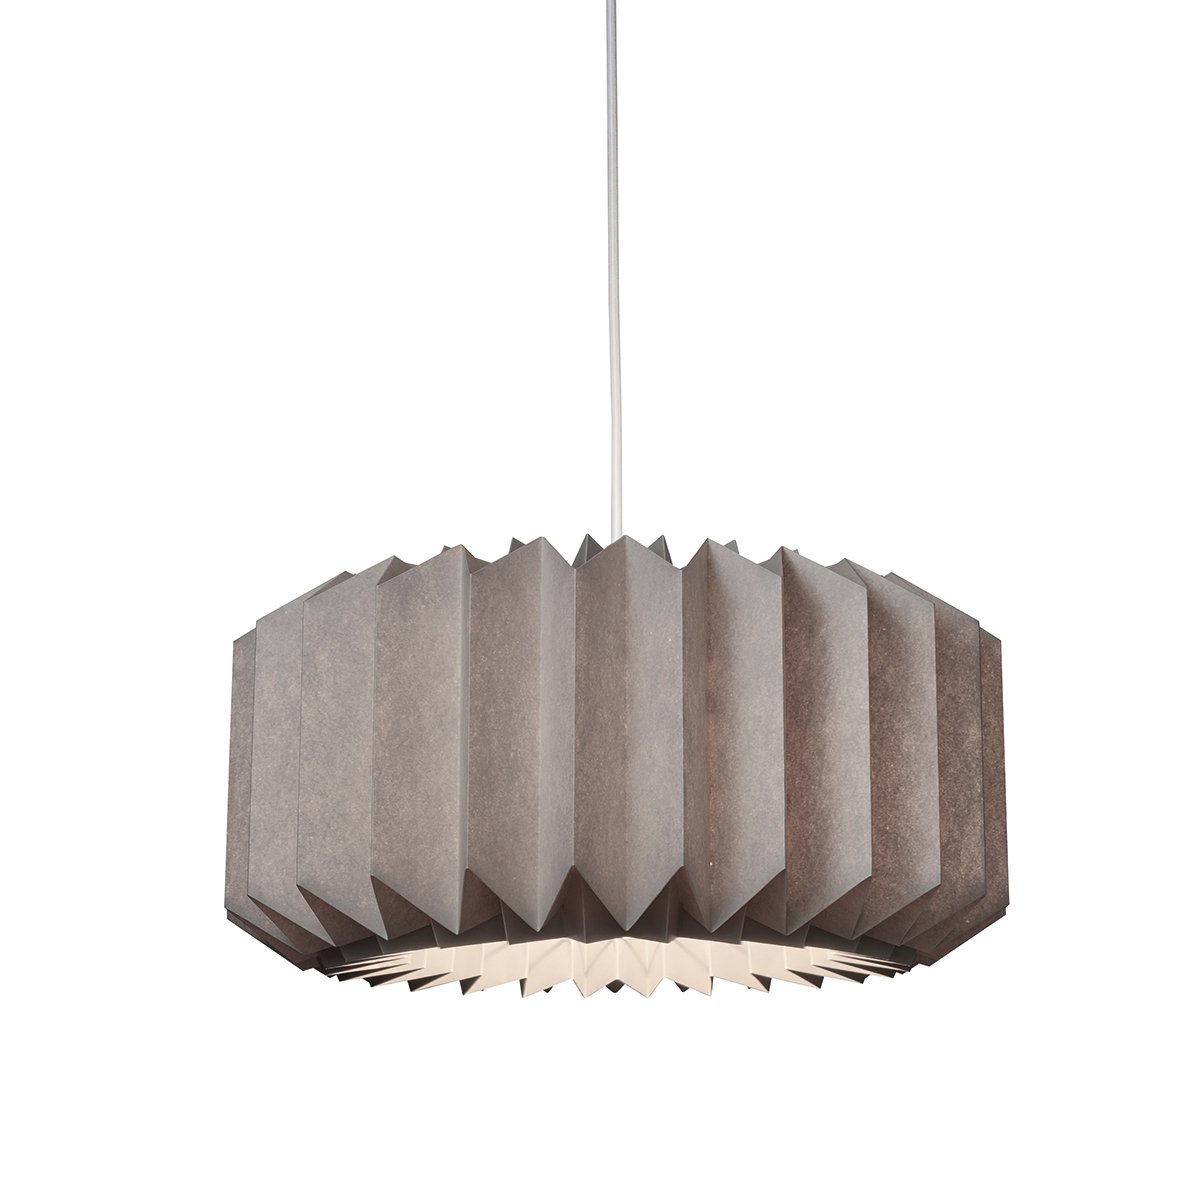 LE KLINT PLEATS Model 154 Hanglamp Soft Sand - Small